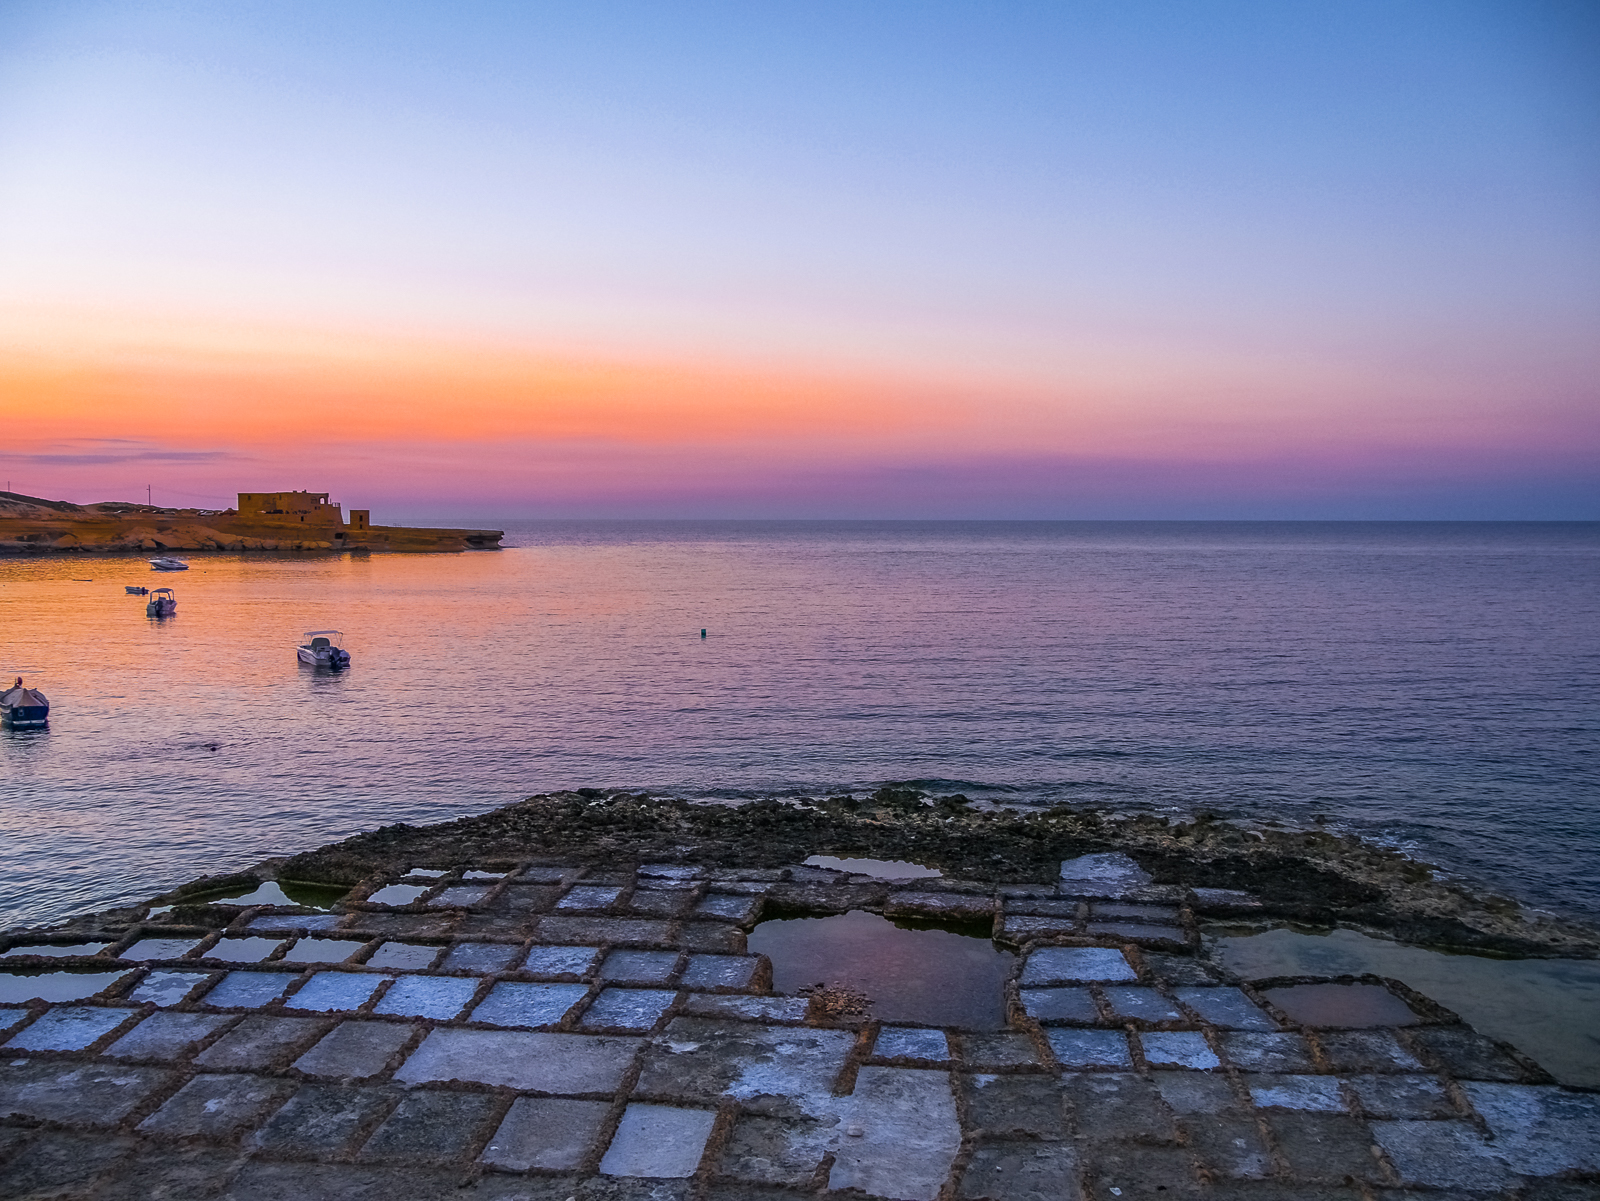 Salt pans at sunset on the island of Gozo, Malta